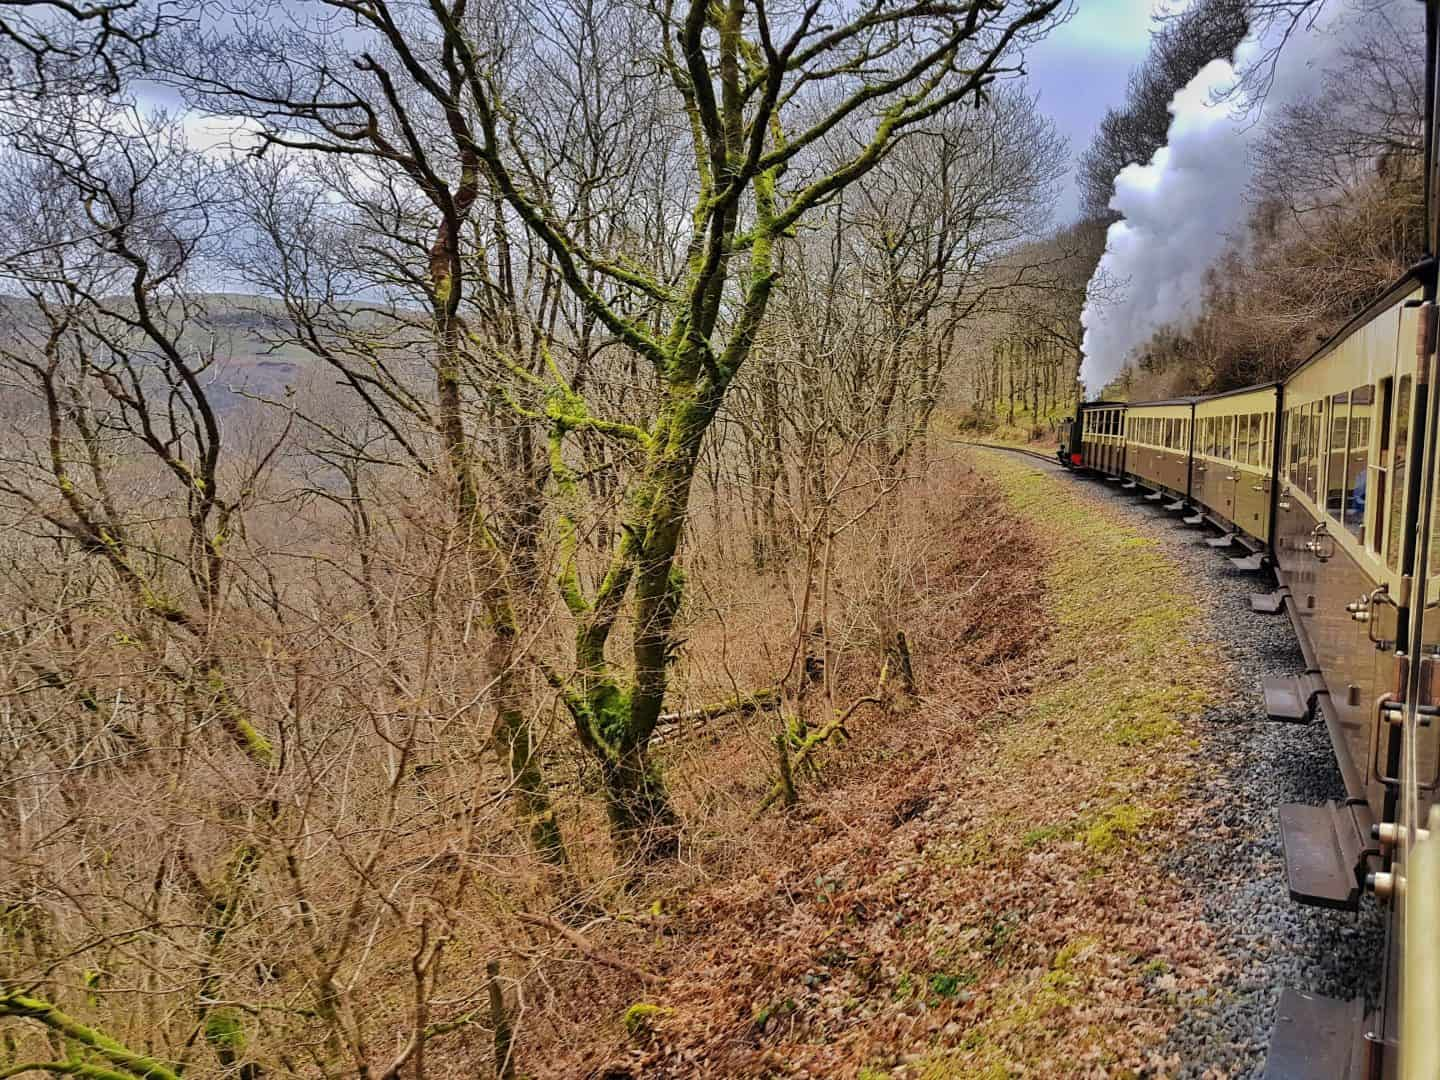 Vale of Rheidol Railway dog friendly family day out